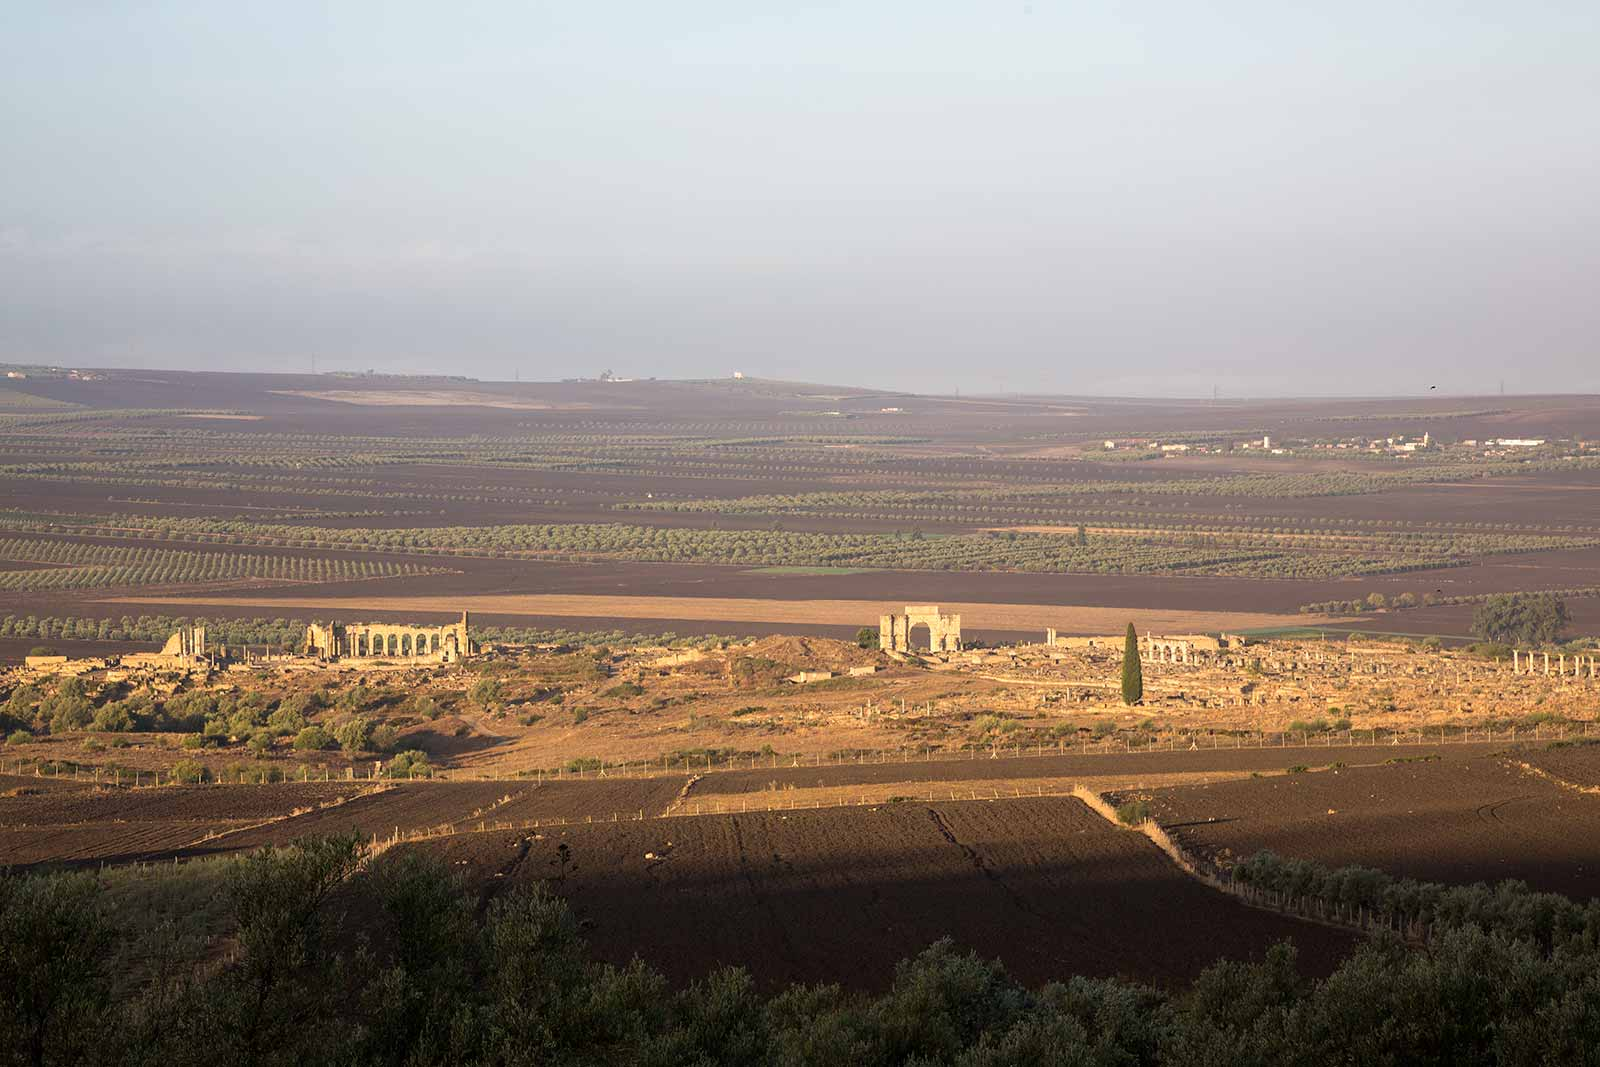 The archaeological Site of Volubilis is a UNESCO World Heritage Site. Volubilis is a partly excavated Roman city, commonly considered as the ancient capital of the Roman-Berber kingdom of Mauretania.